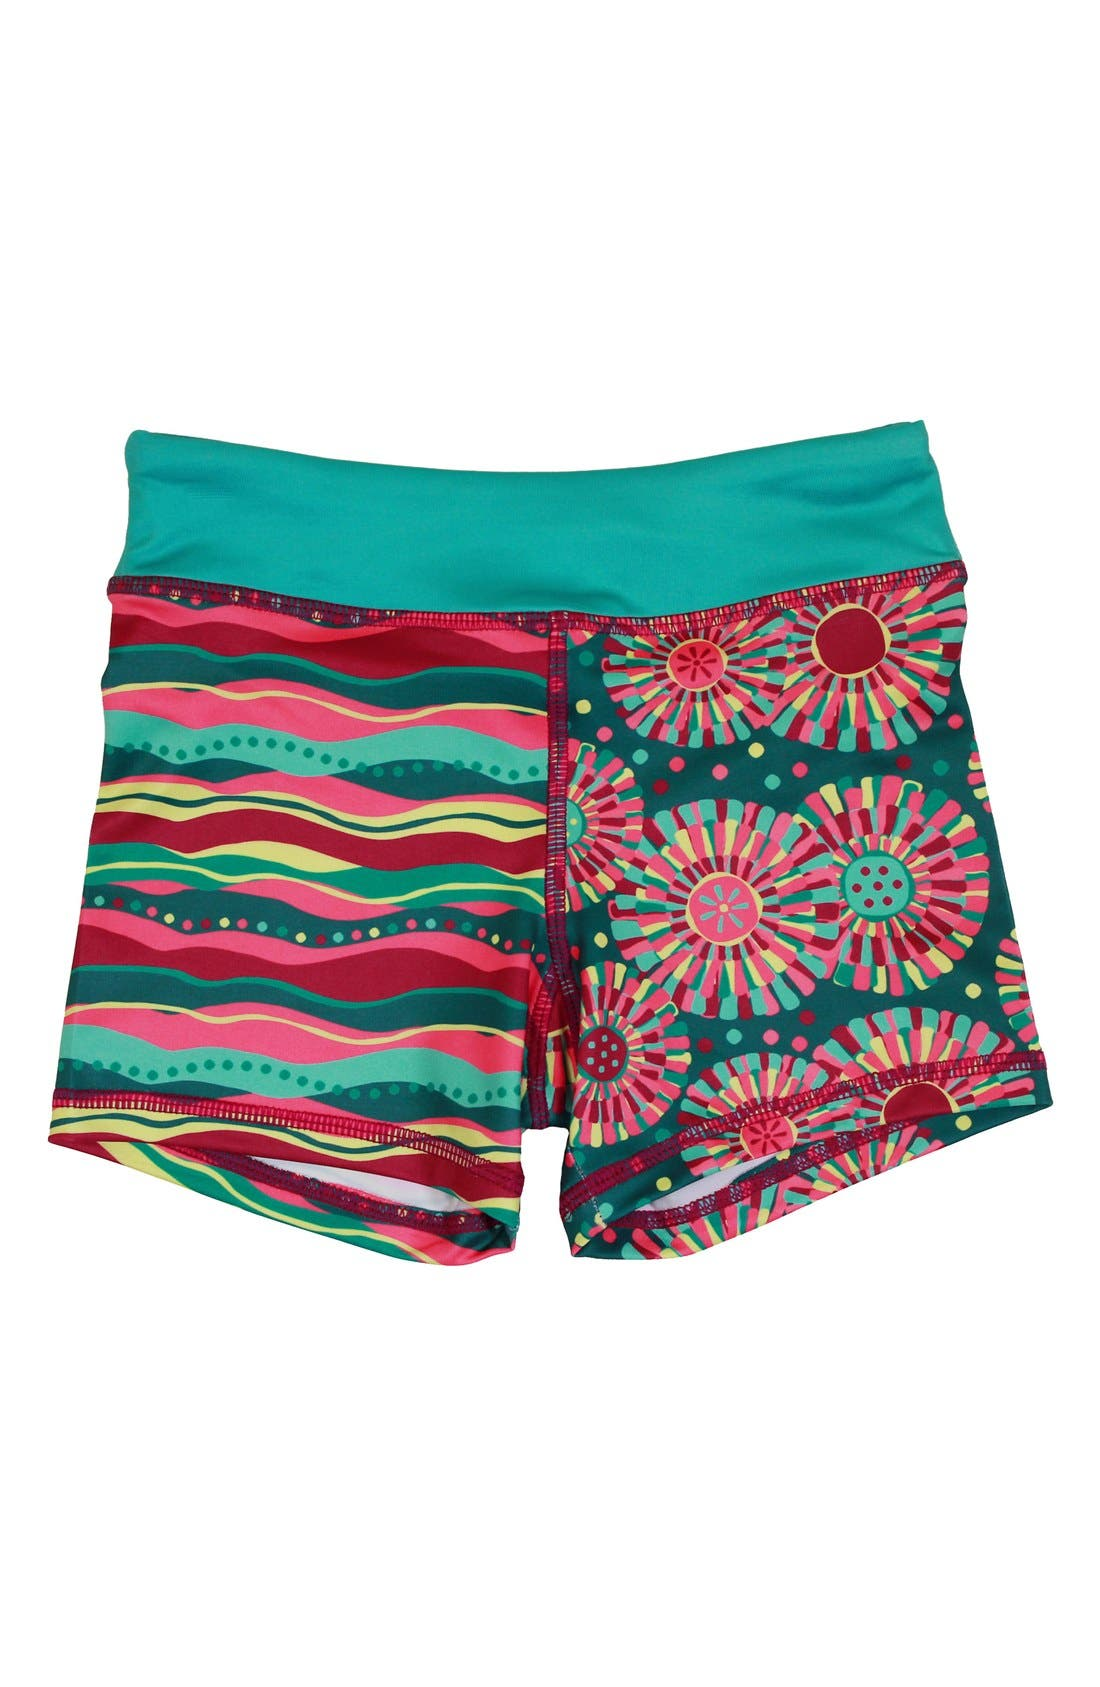 'Splits' Mixed Print Shorts,                             Main thumbnail 1, color,                             Gleam